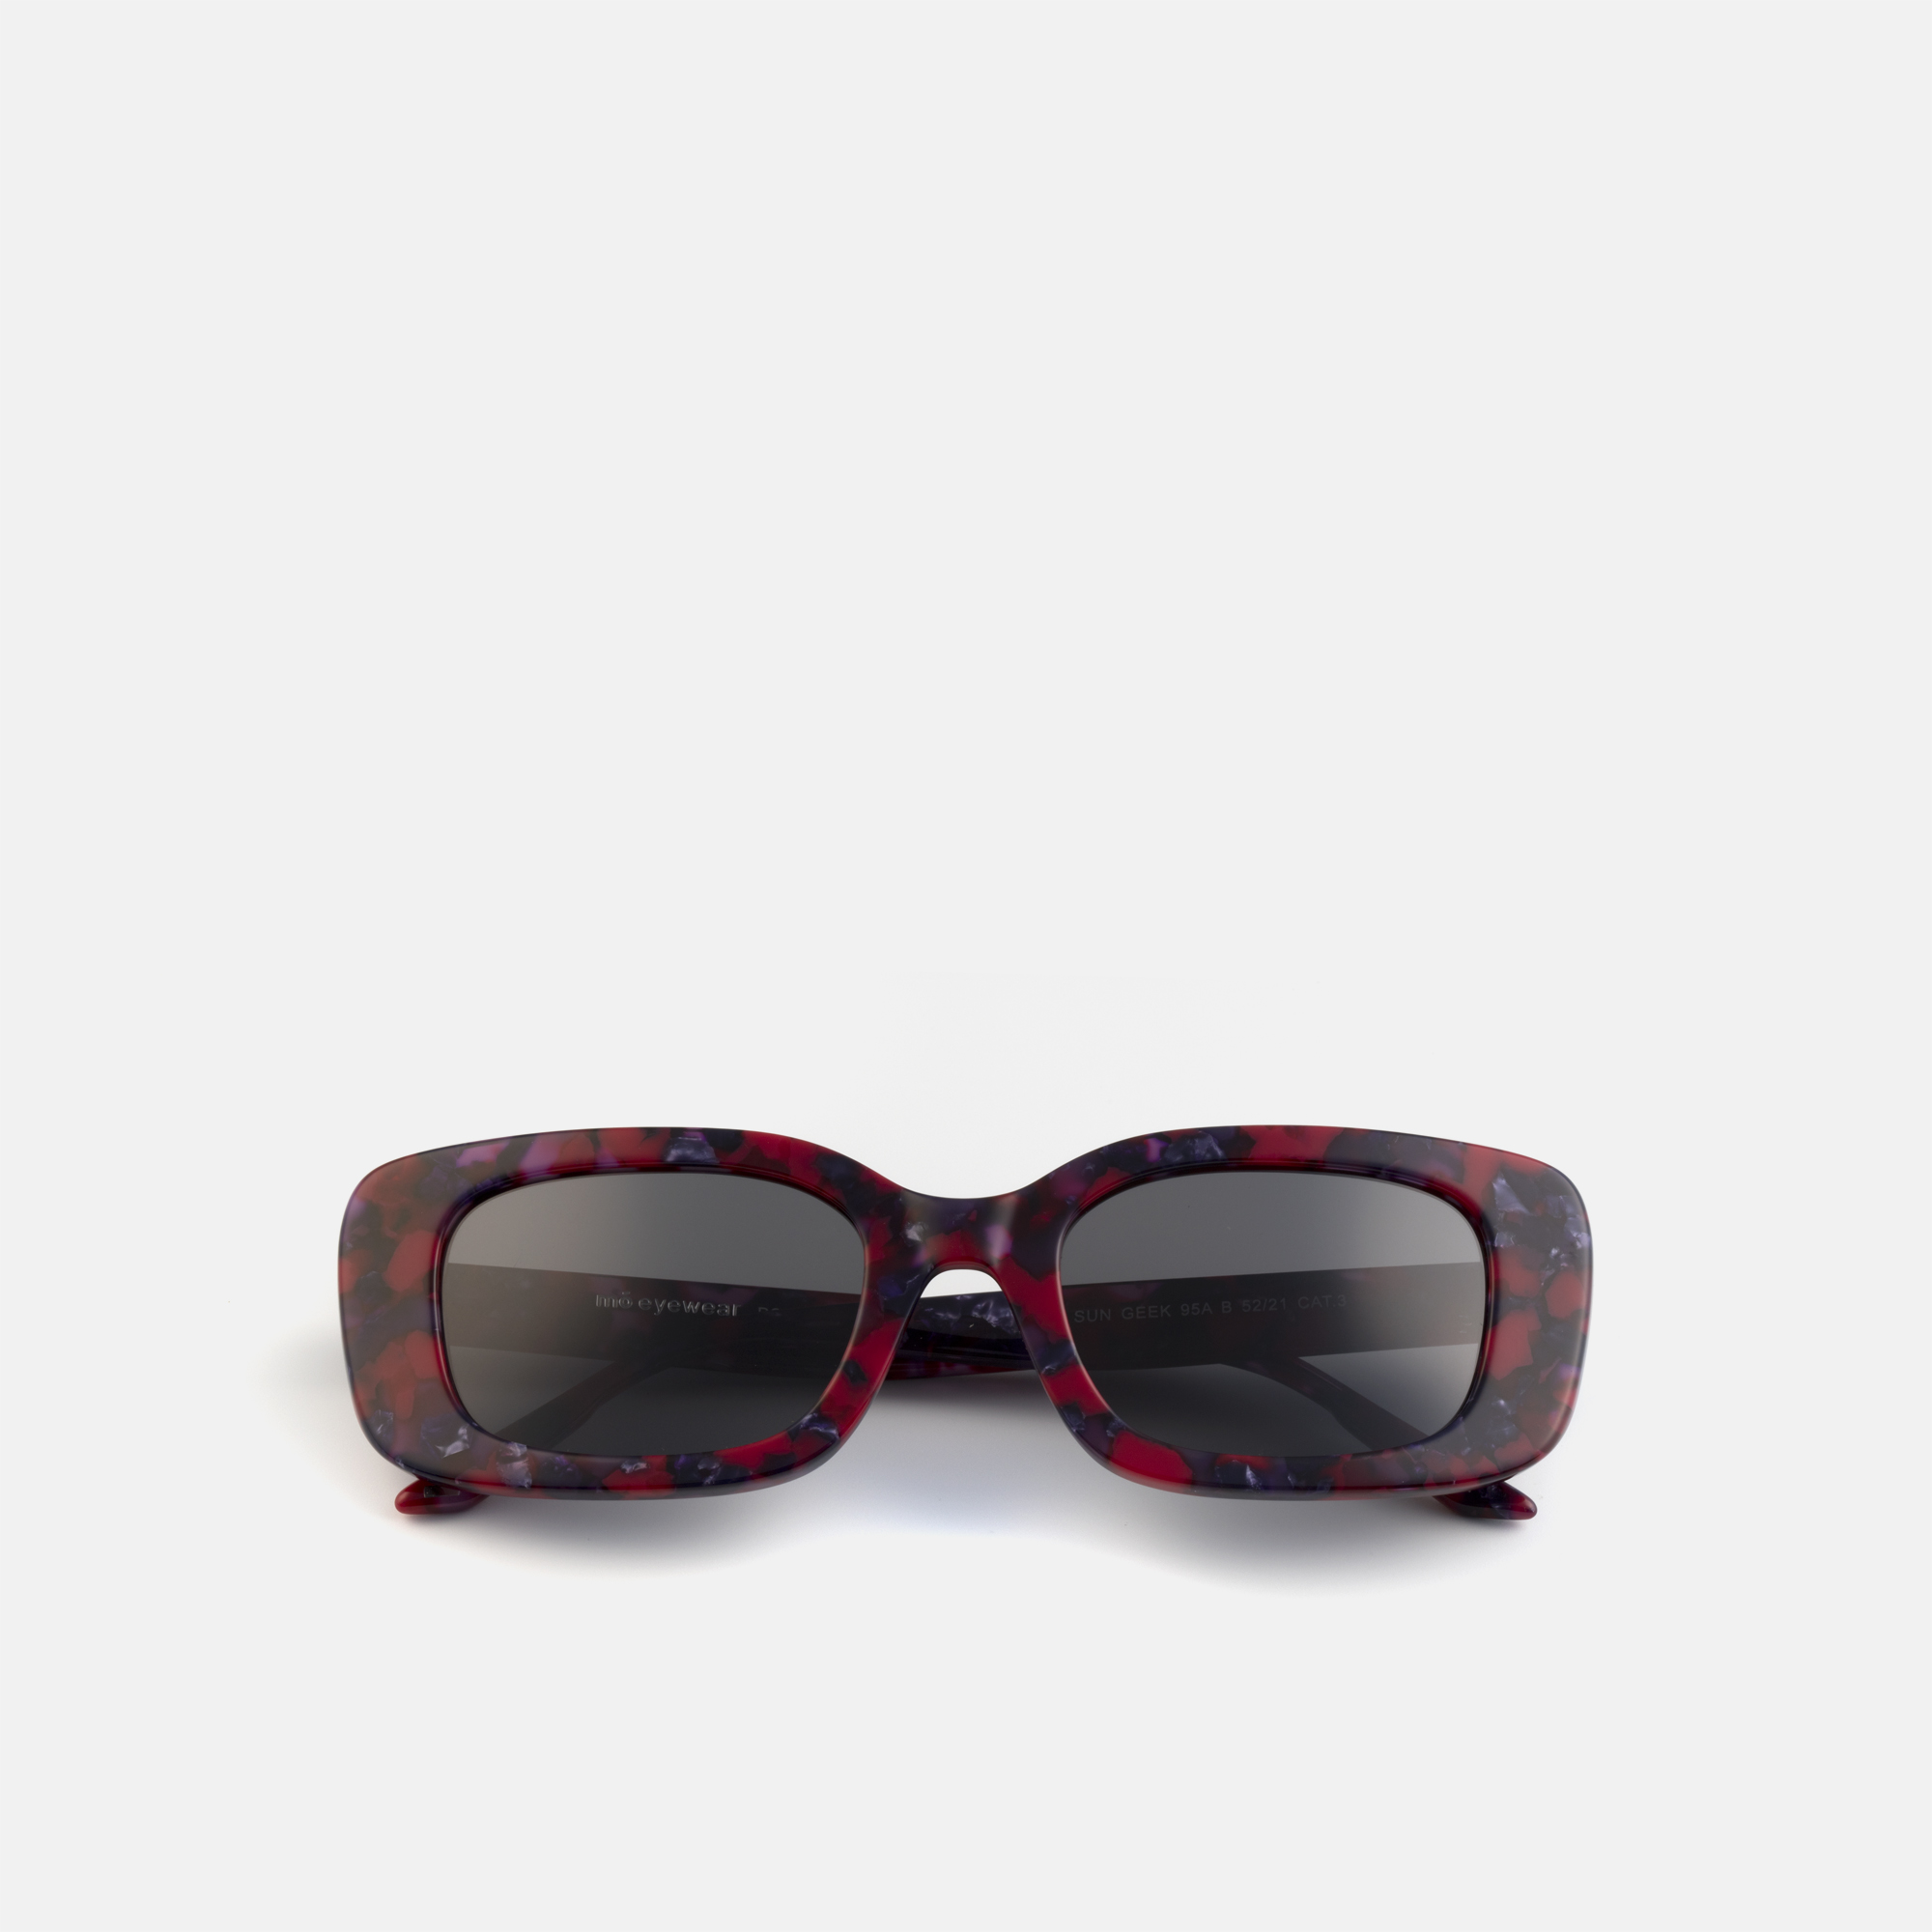 mó sun geek 95A B, red-purple, hi-res